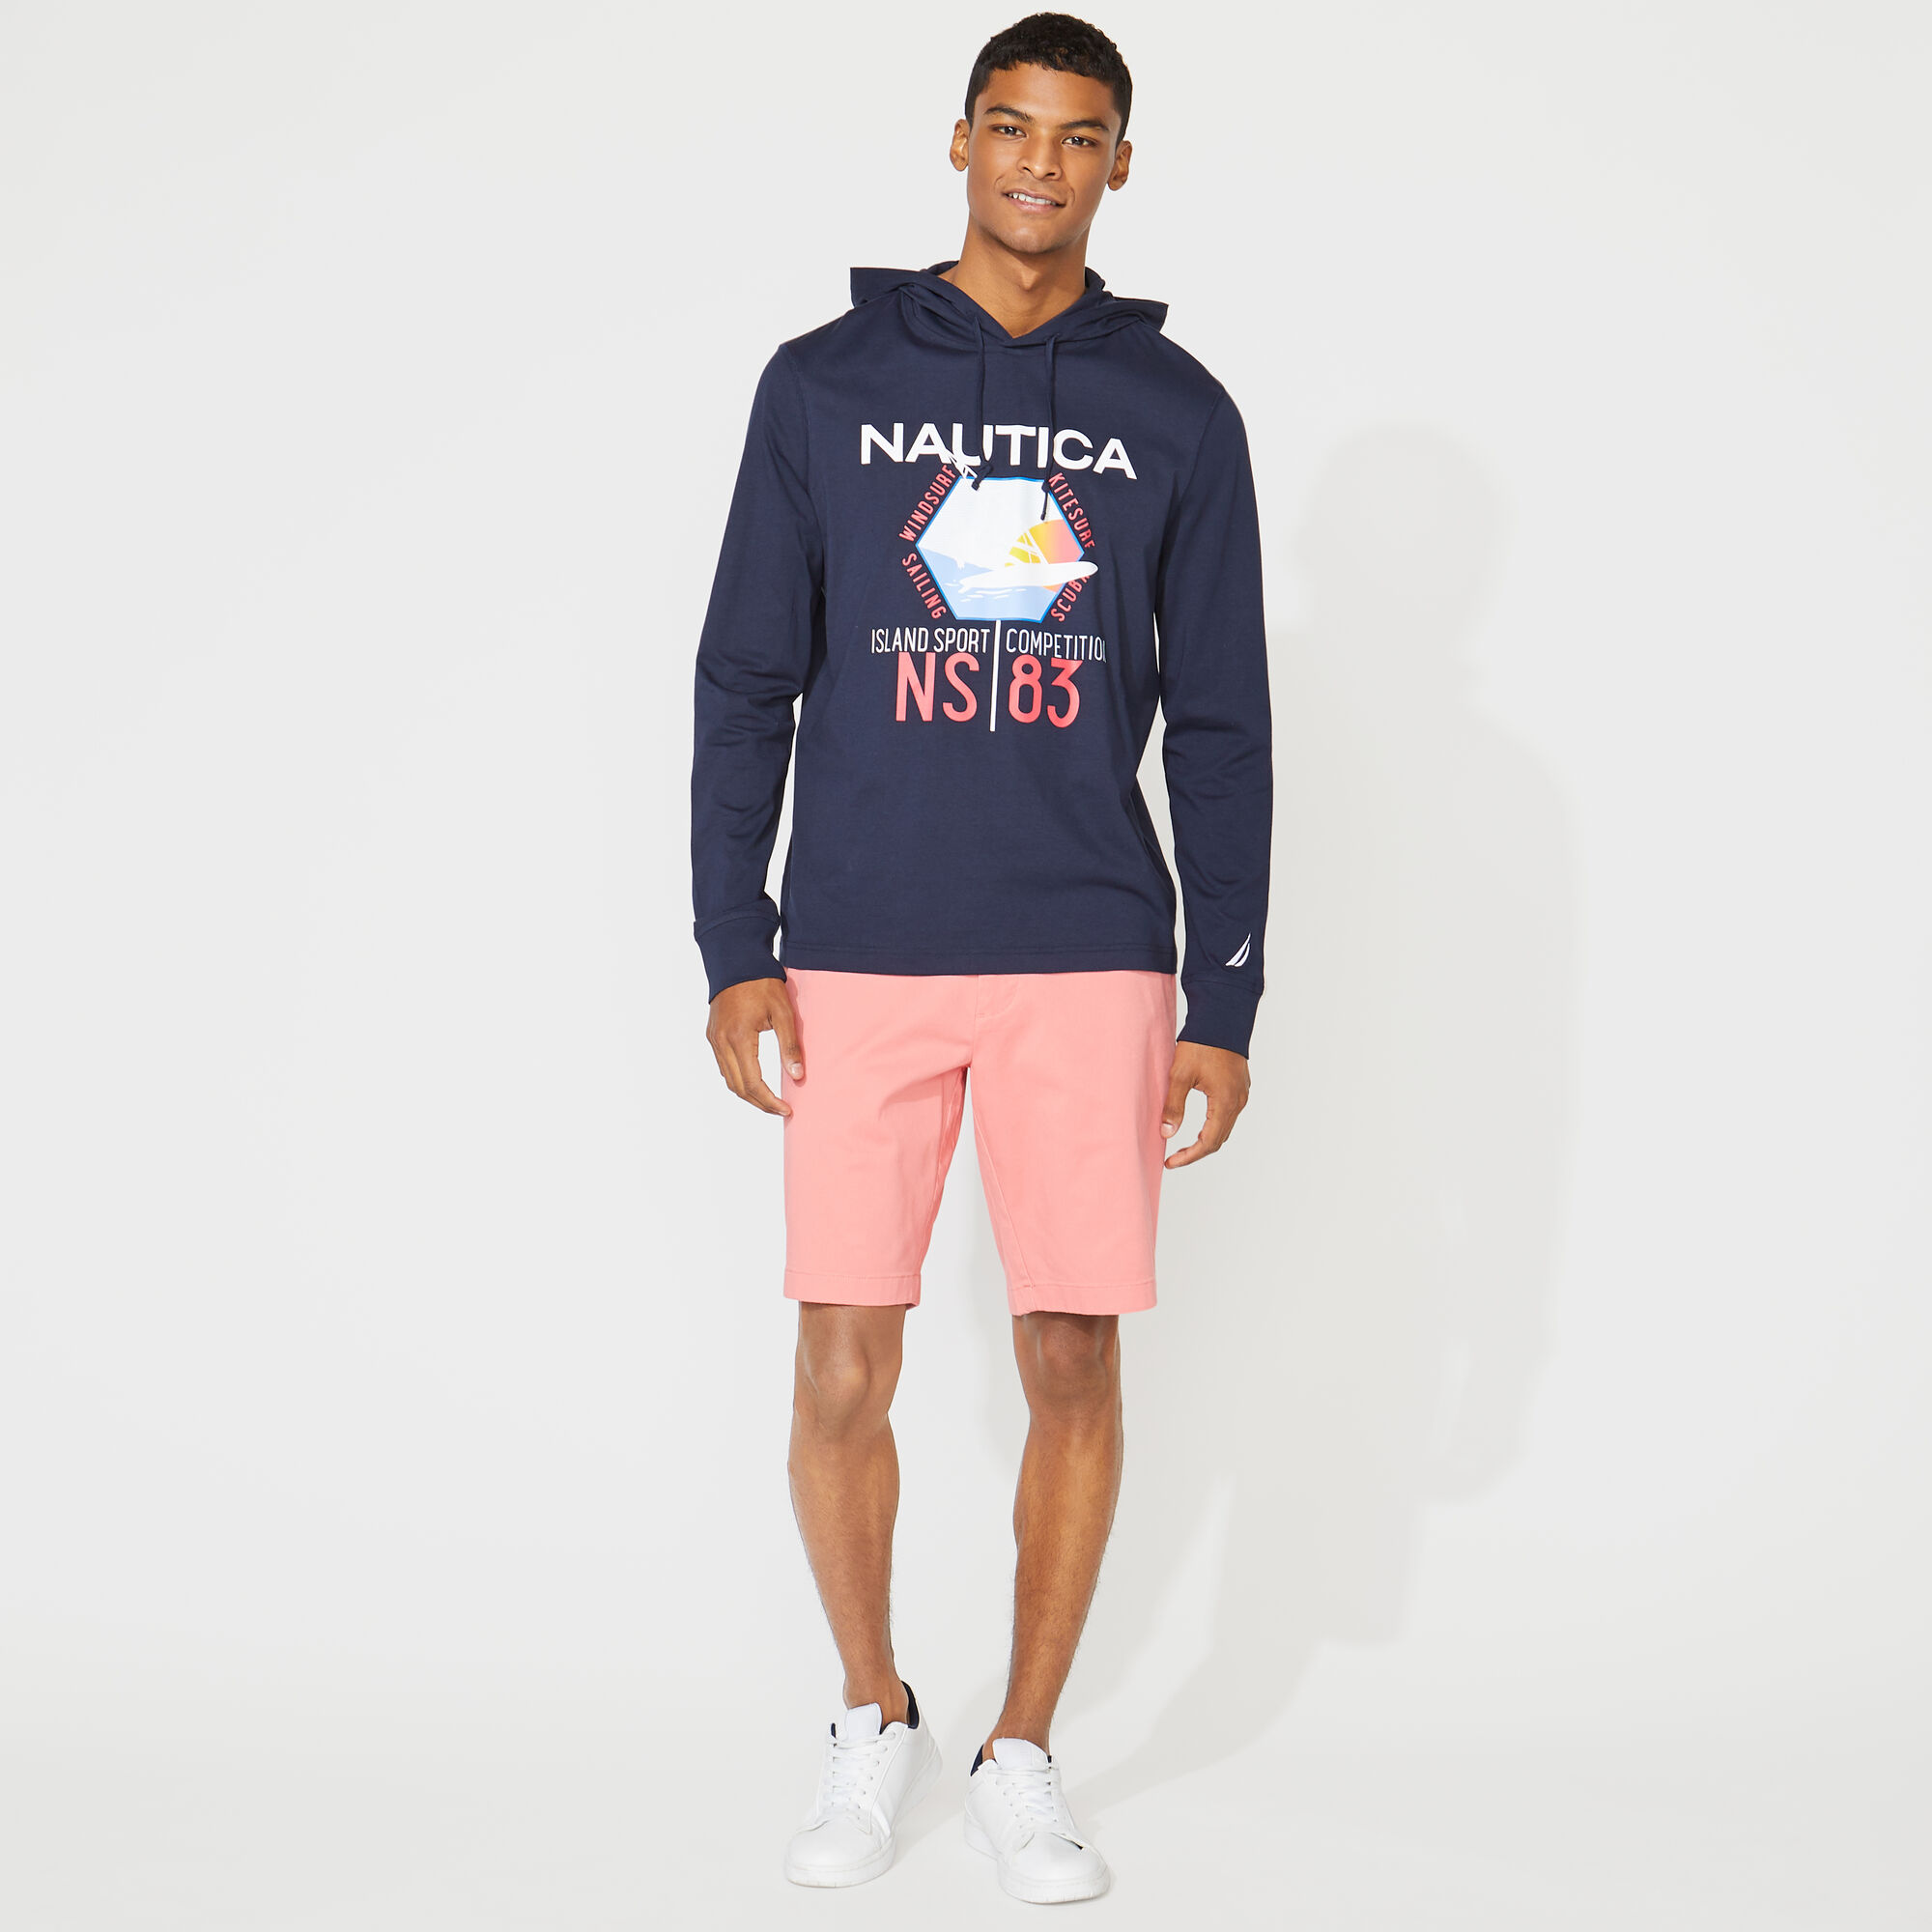 Nautica-Mens-10-034-Classic-Fit-Deck-Shorts-With-Stretch thumbnail 30